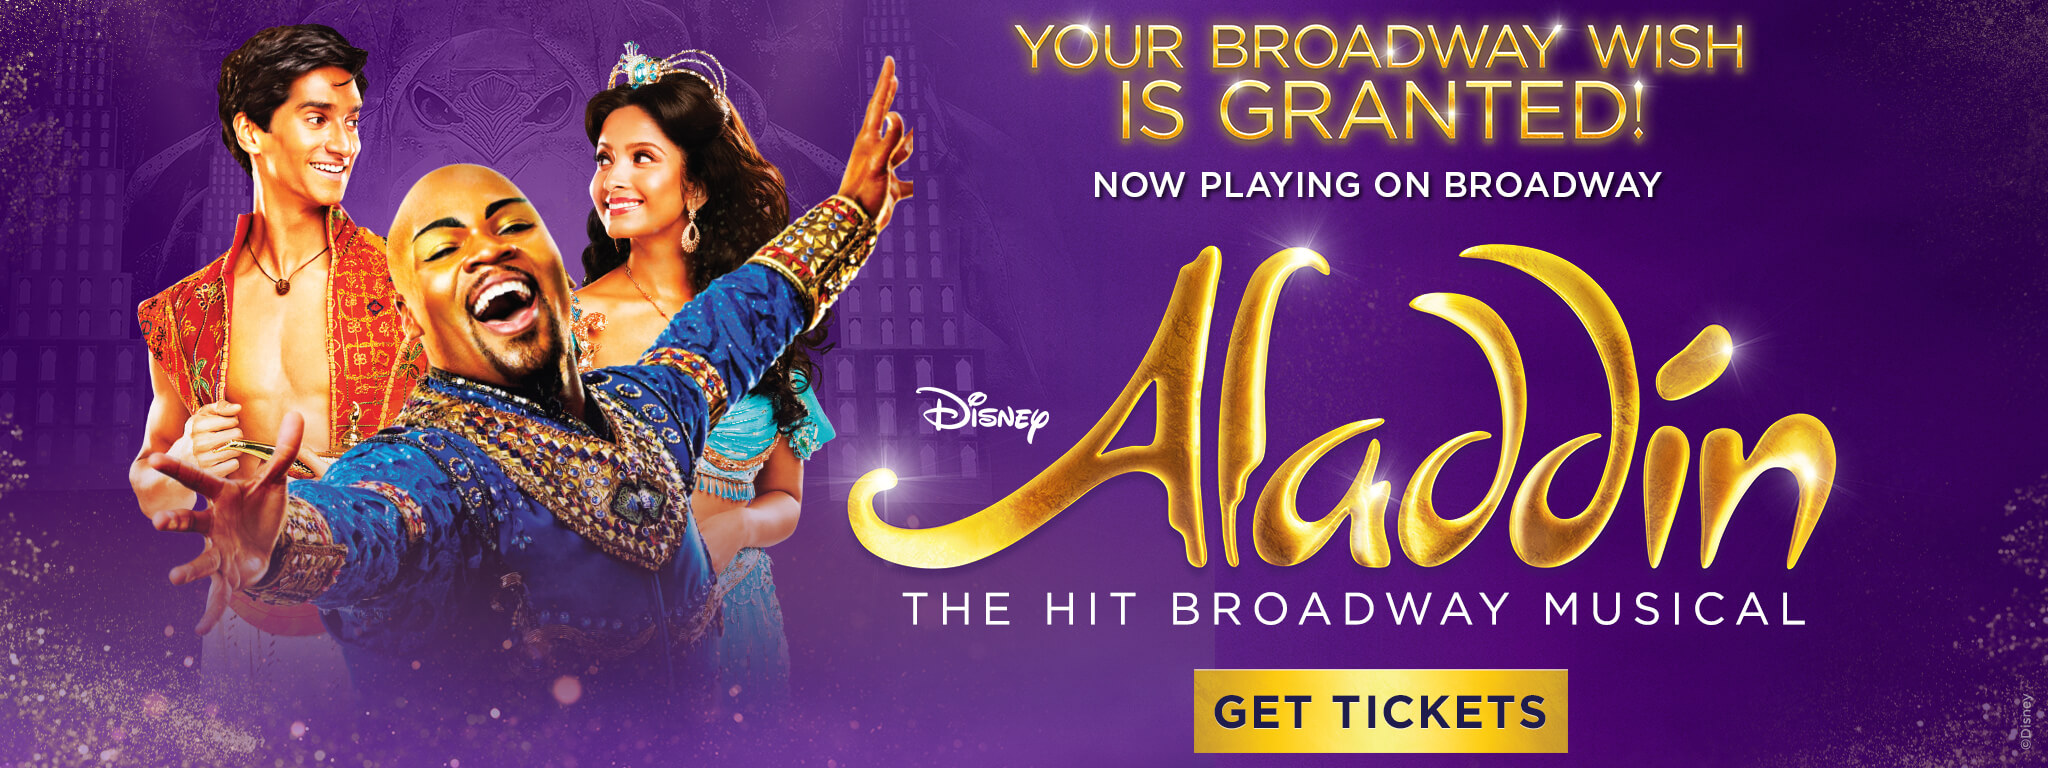 Your Broadway Wish Is Granted! Now Playing on Broadway